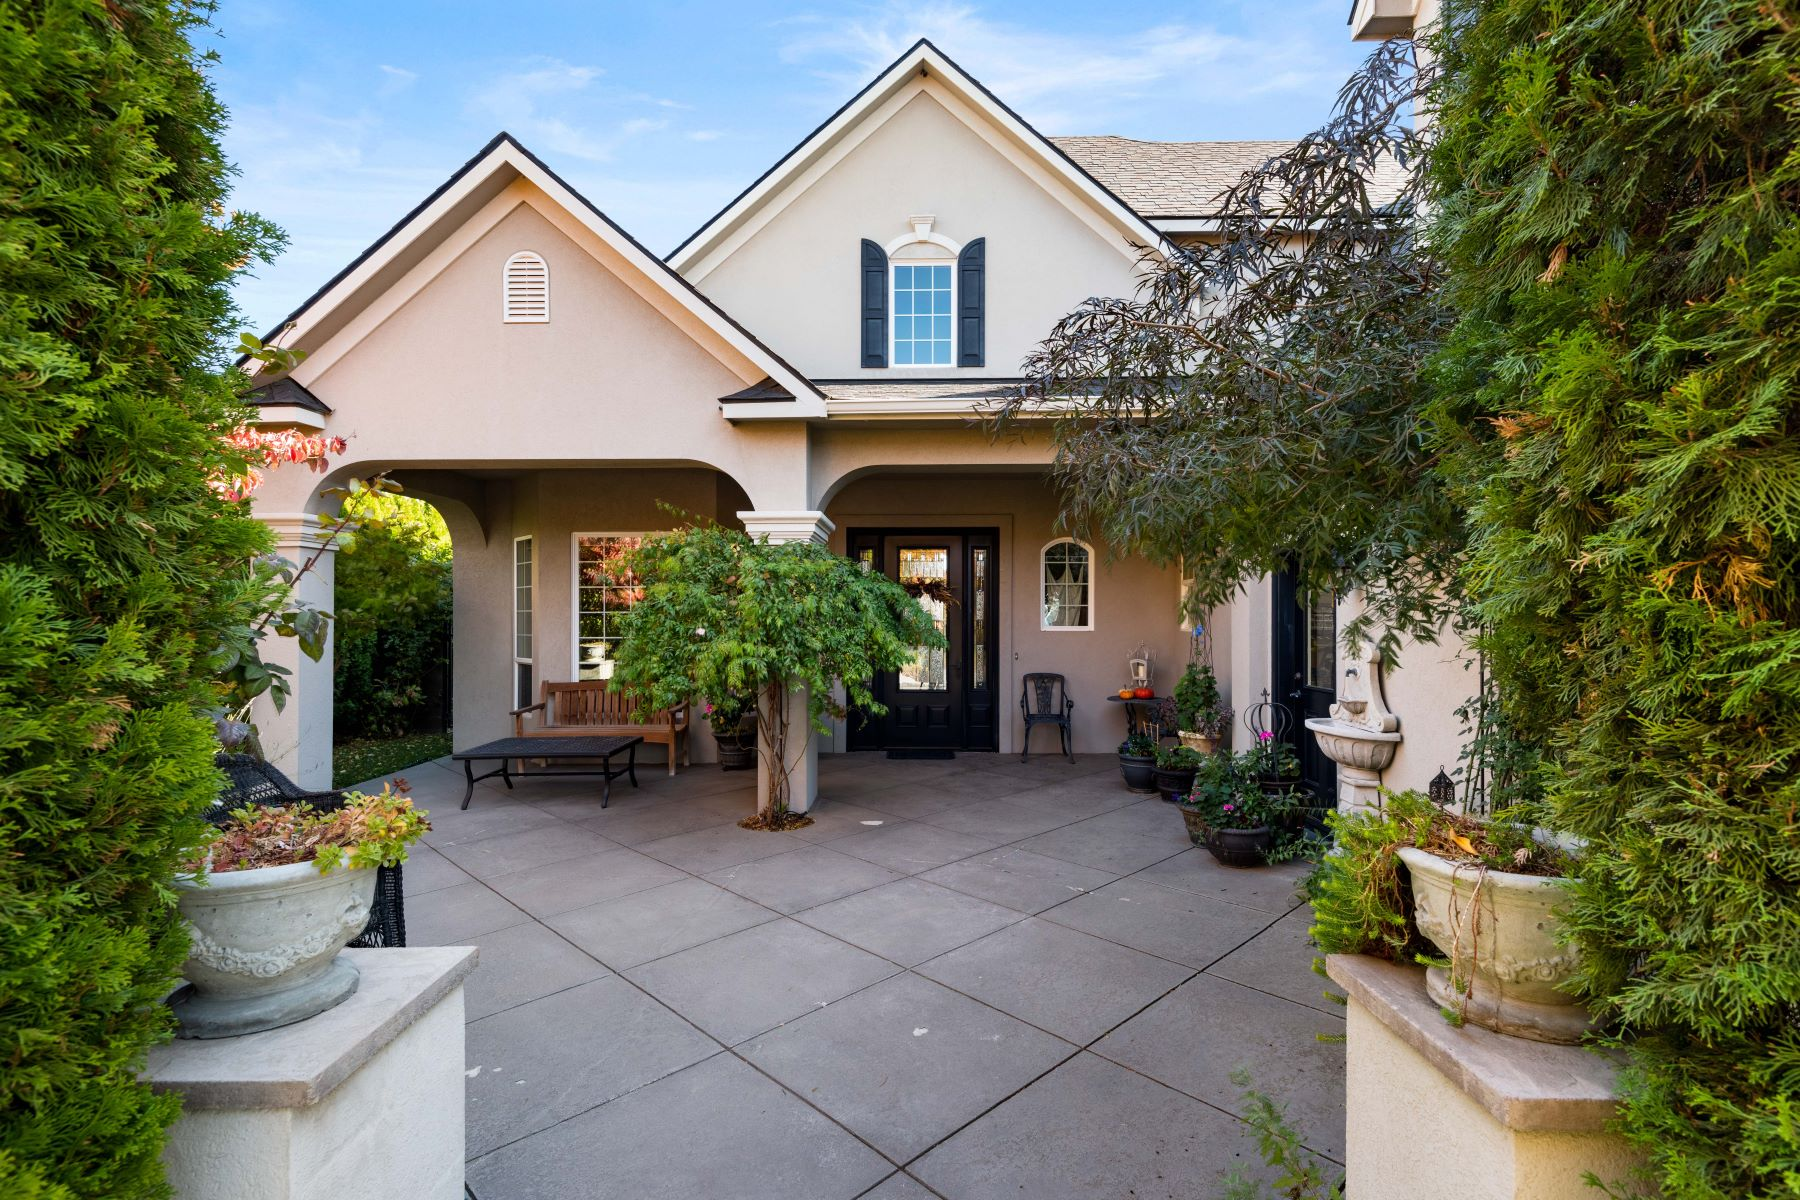 Single Family Homes for Sale at Outrageously Gorgeous! 298 Piper Street Richland, Washington 99352 United States